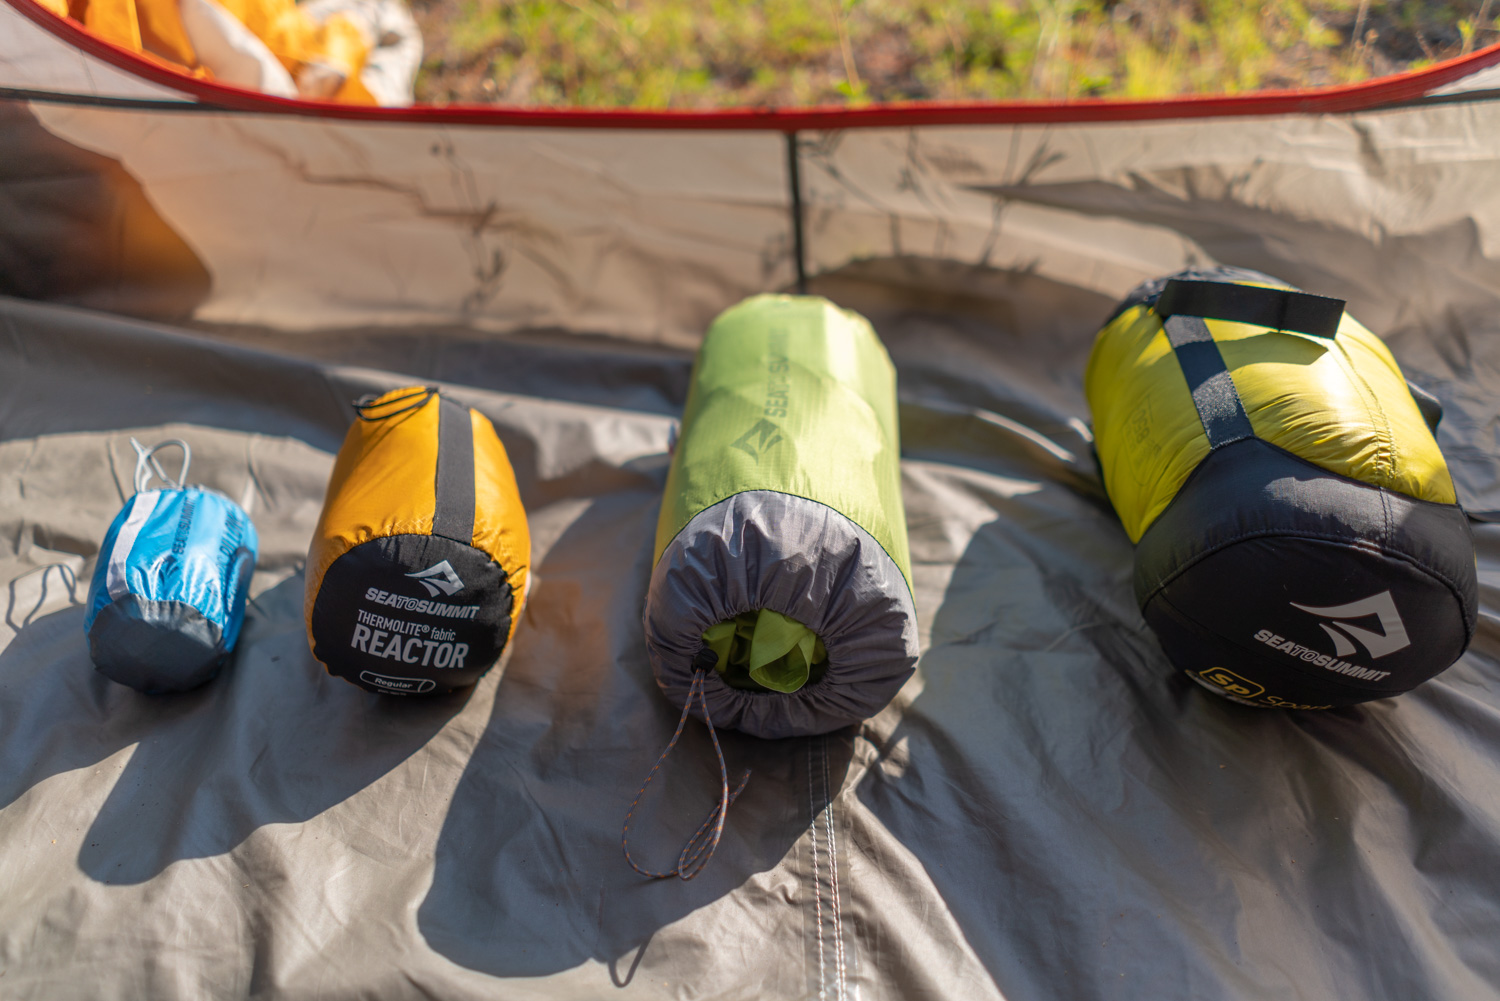 A range of Sea to Summit's gear for size comparisons from left to right:  Aeros Premium Pillow ,  Reactor Liner ,  Comfort Light Insulated Mat ,  Spark III sleeping bag